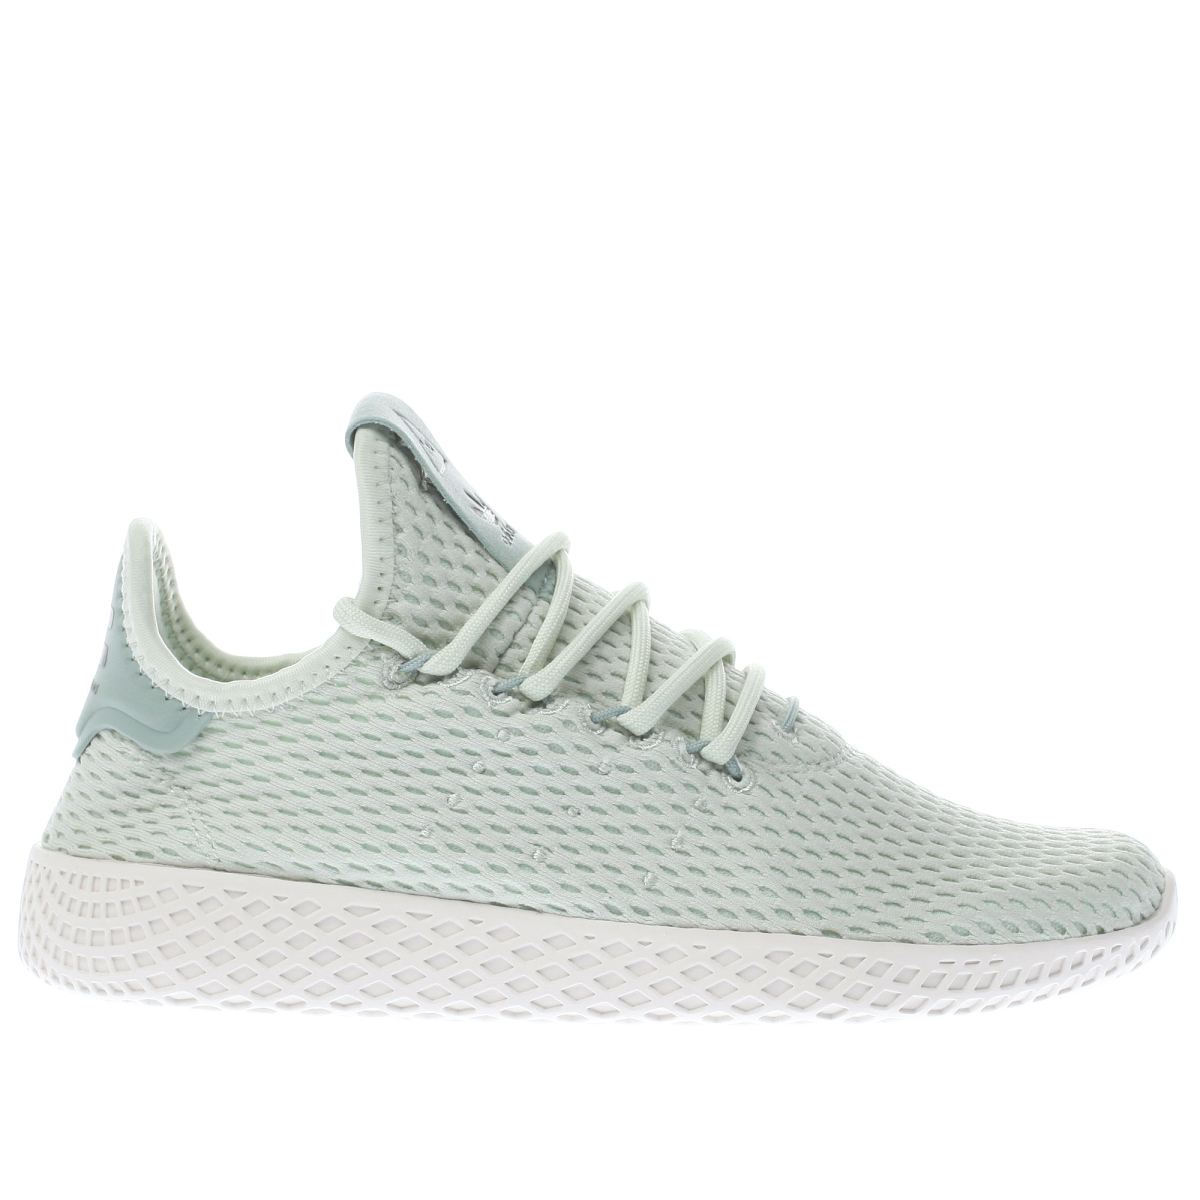 adidas light green pharrell williams tennis hu j Youth Trainers